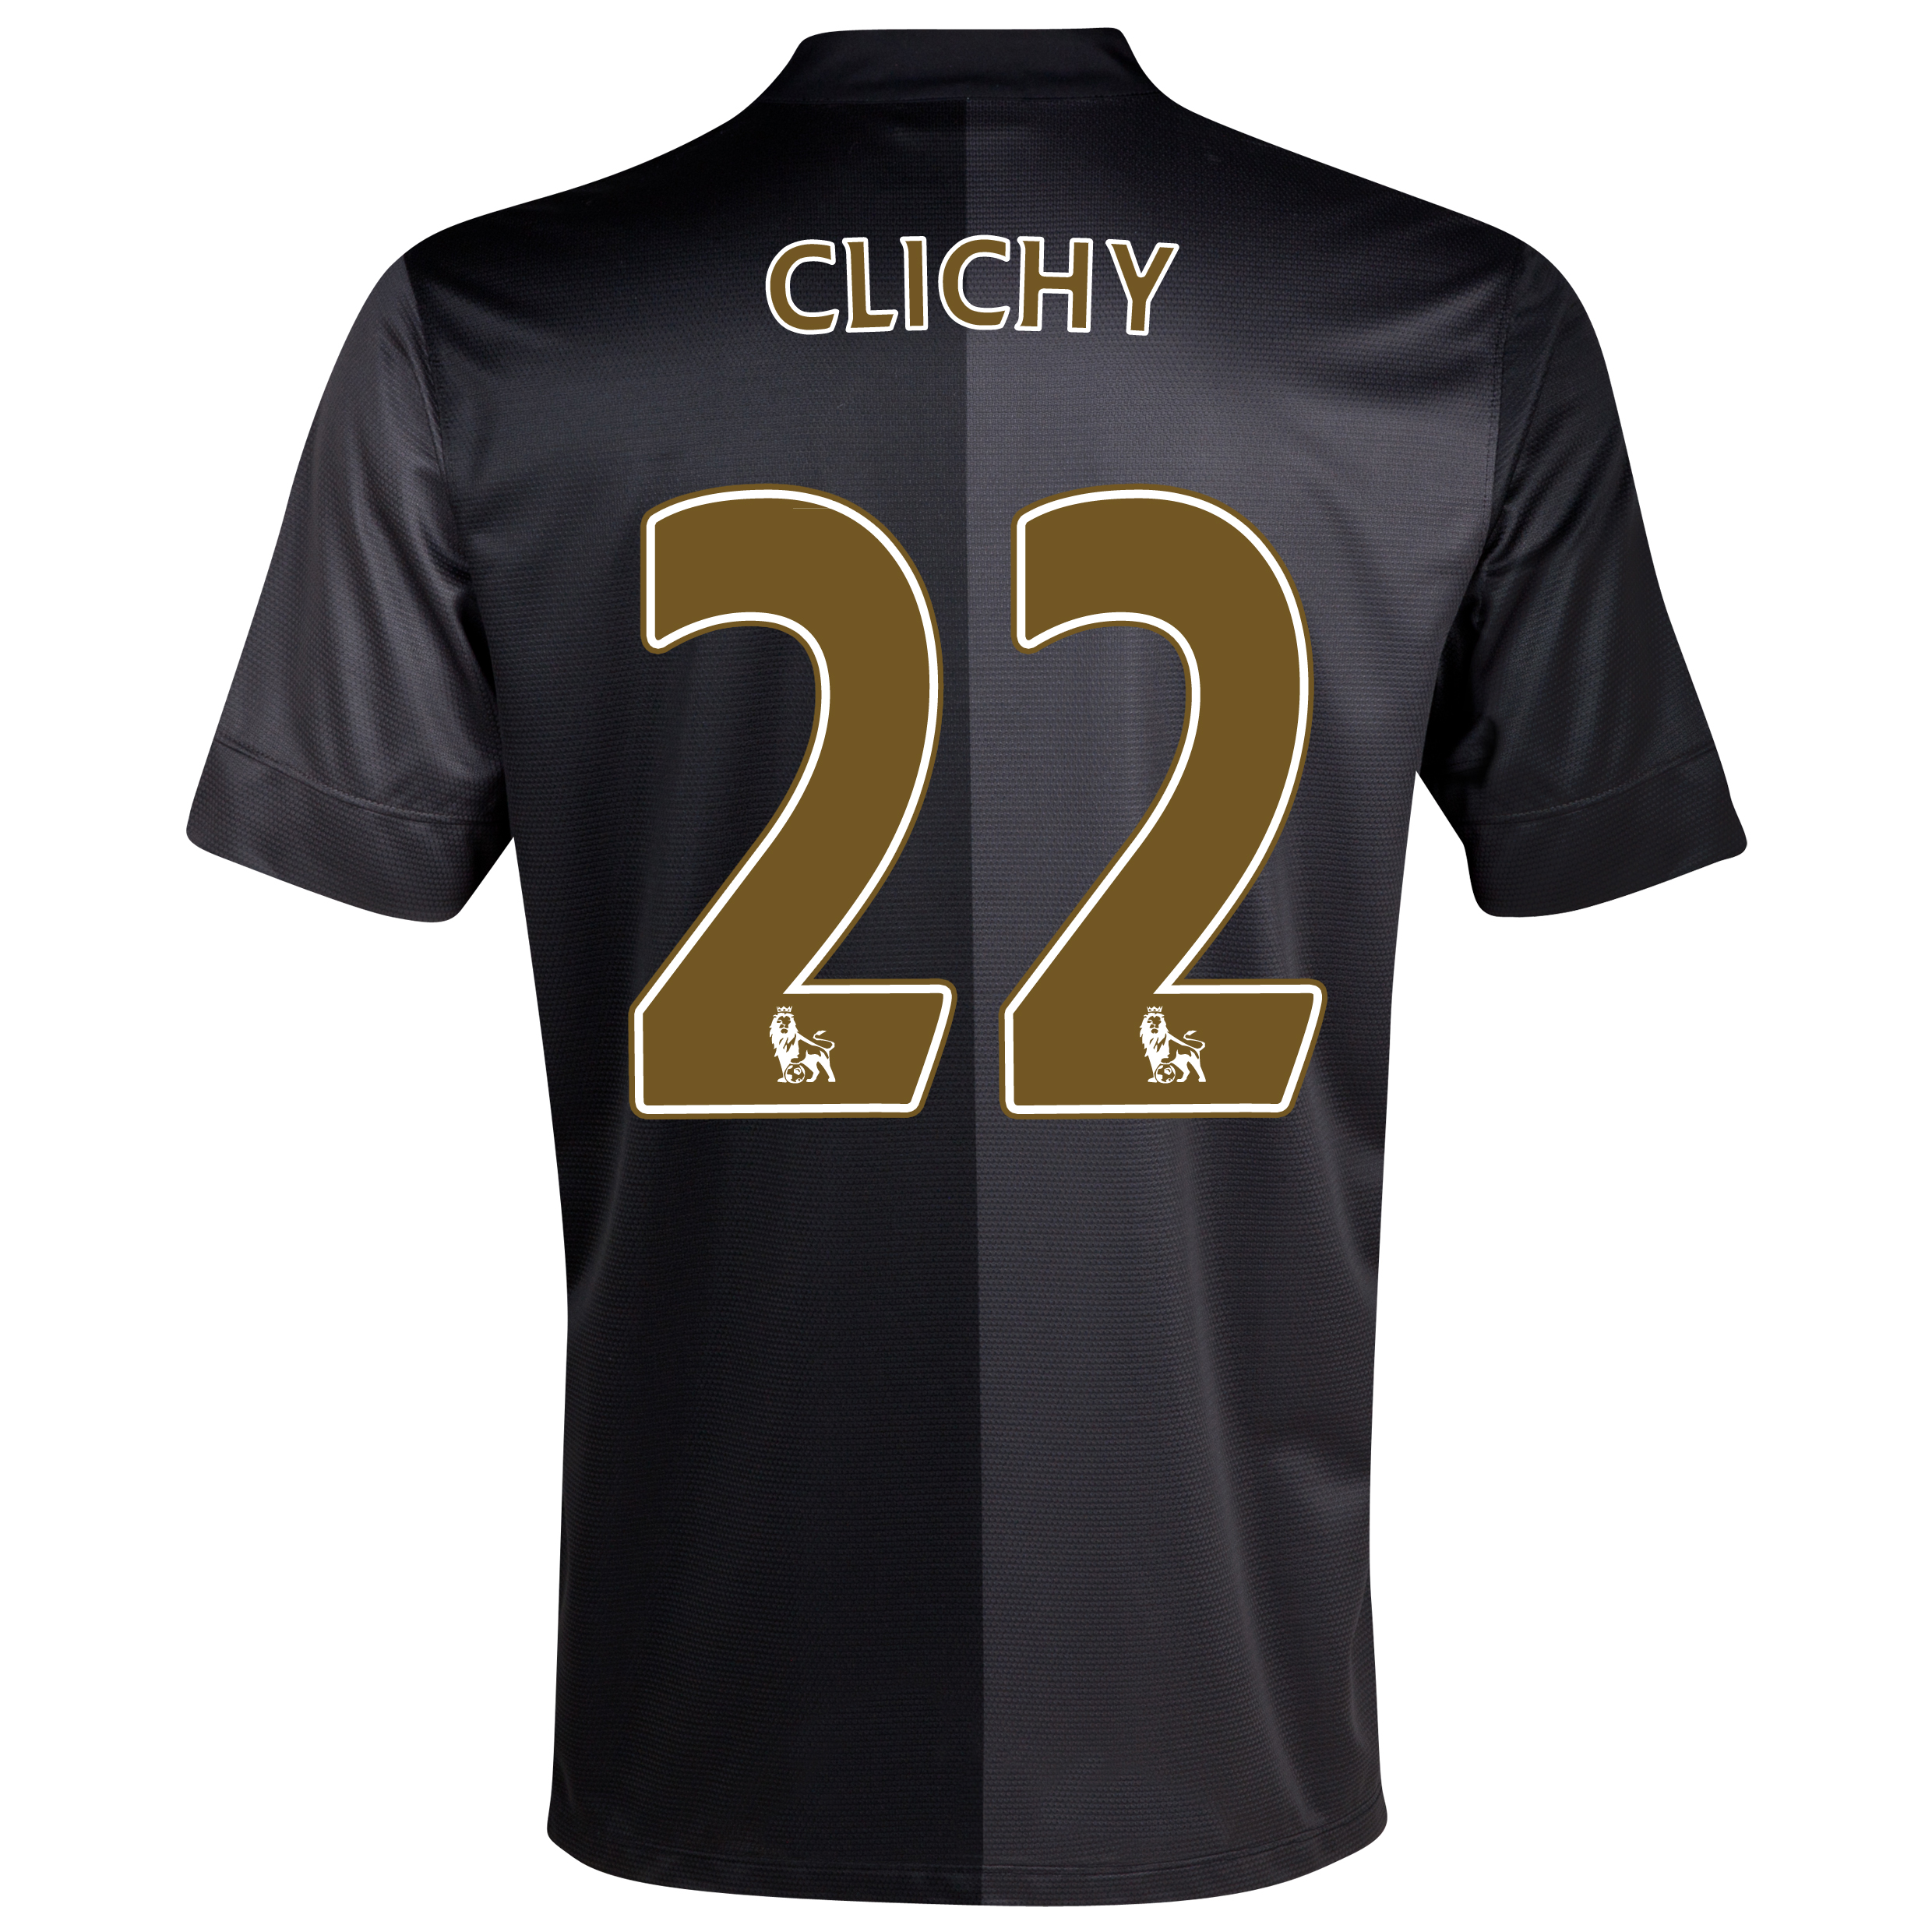 Clichy hero shirts